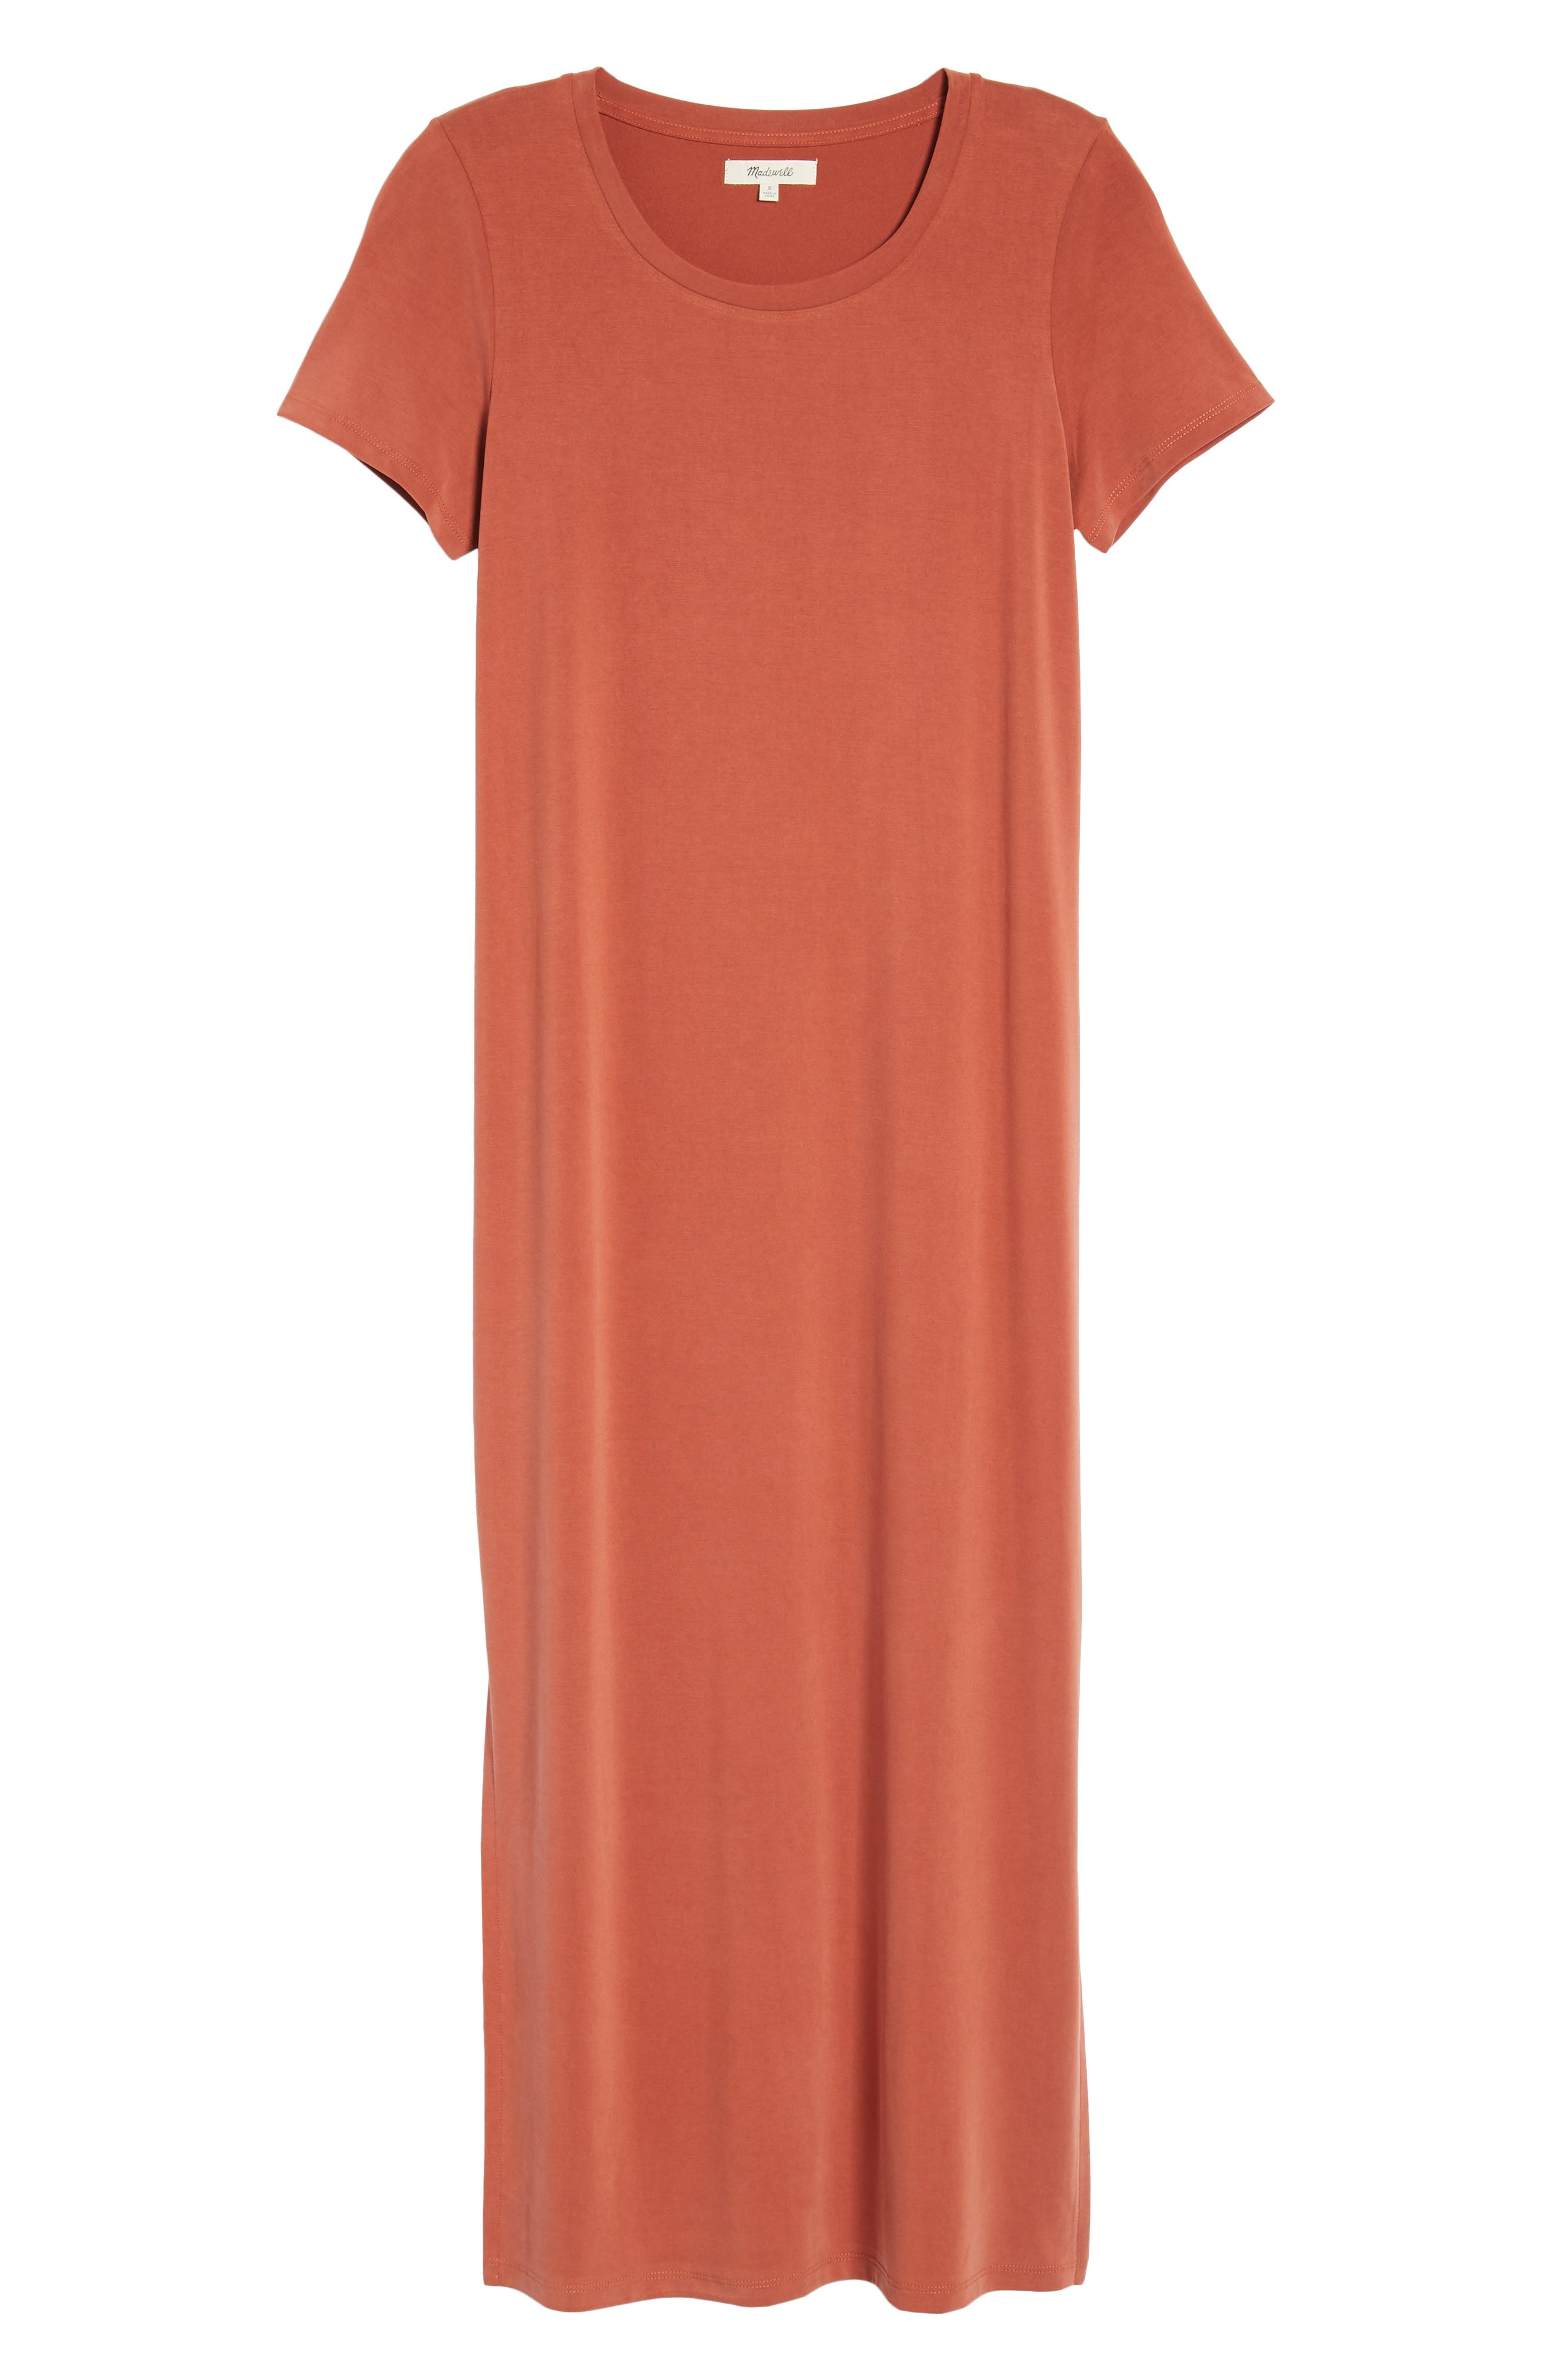 Sandwashed Maxi T-Shirt Dress,                             Alternate thumbnail 7, color,                             Rusty Torch